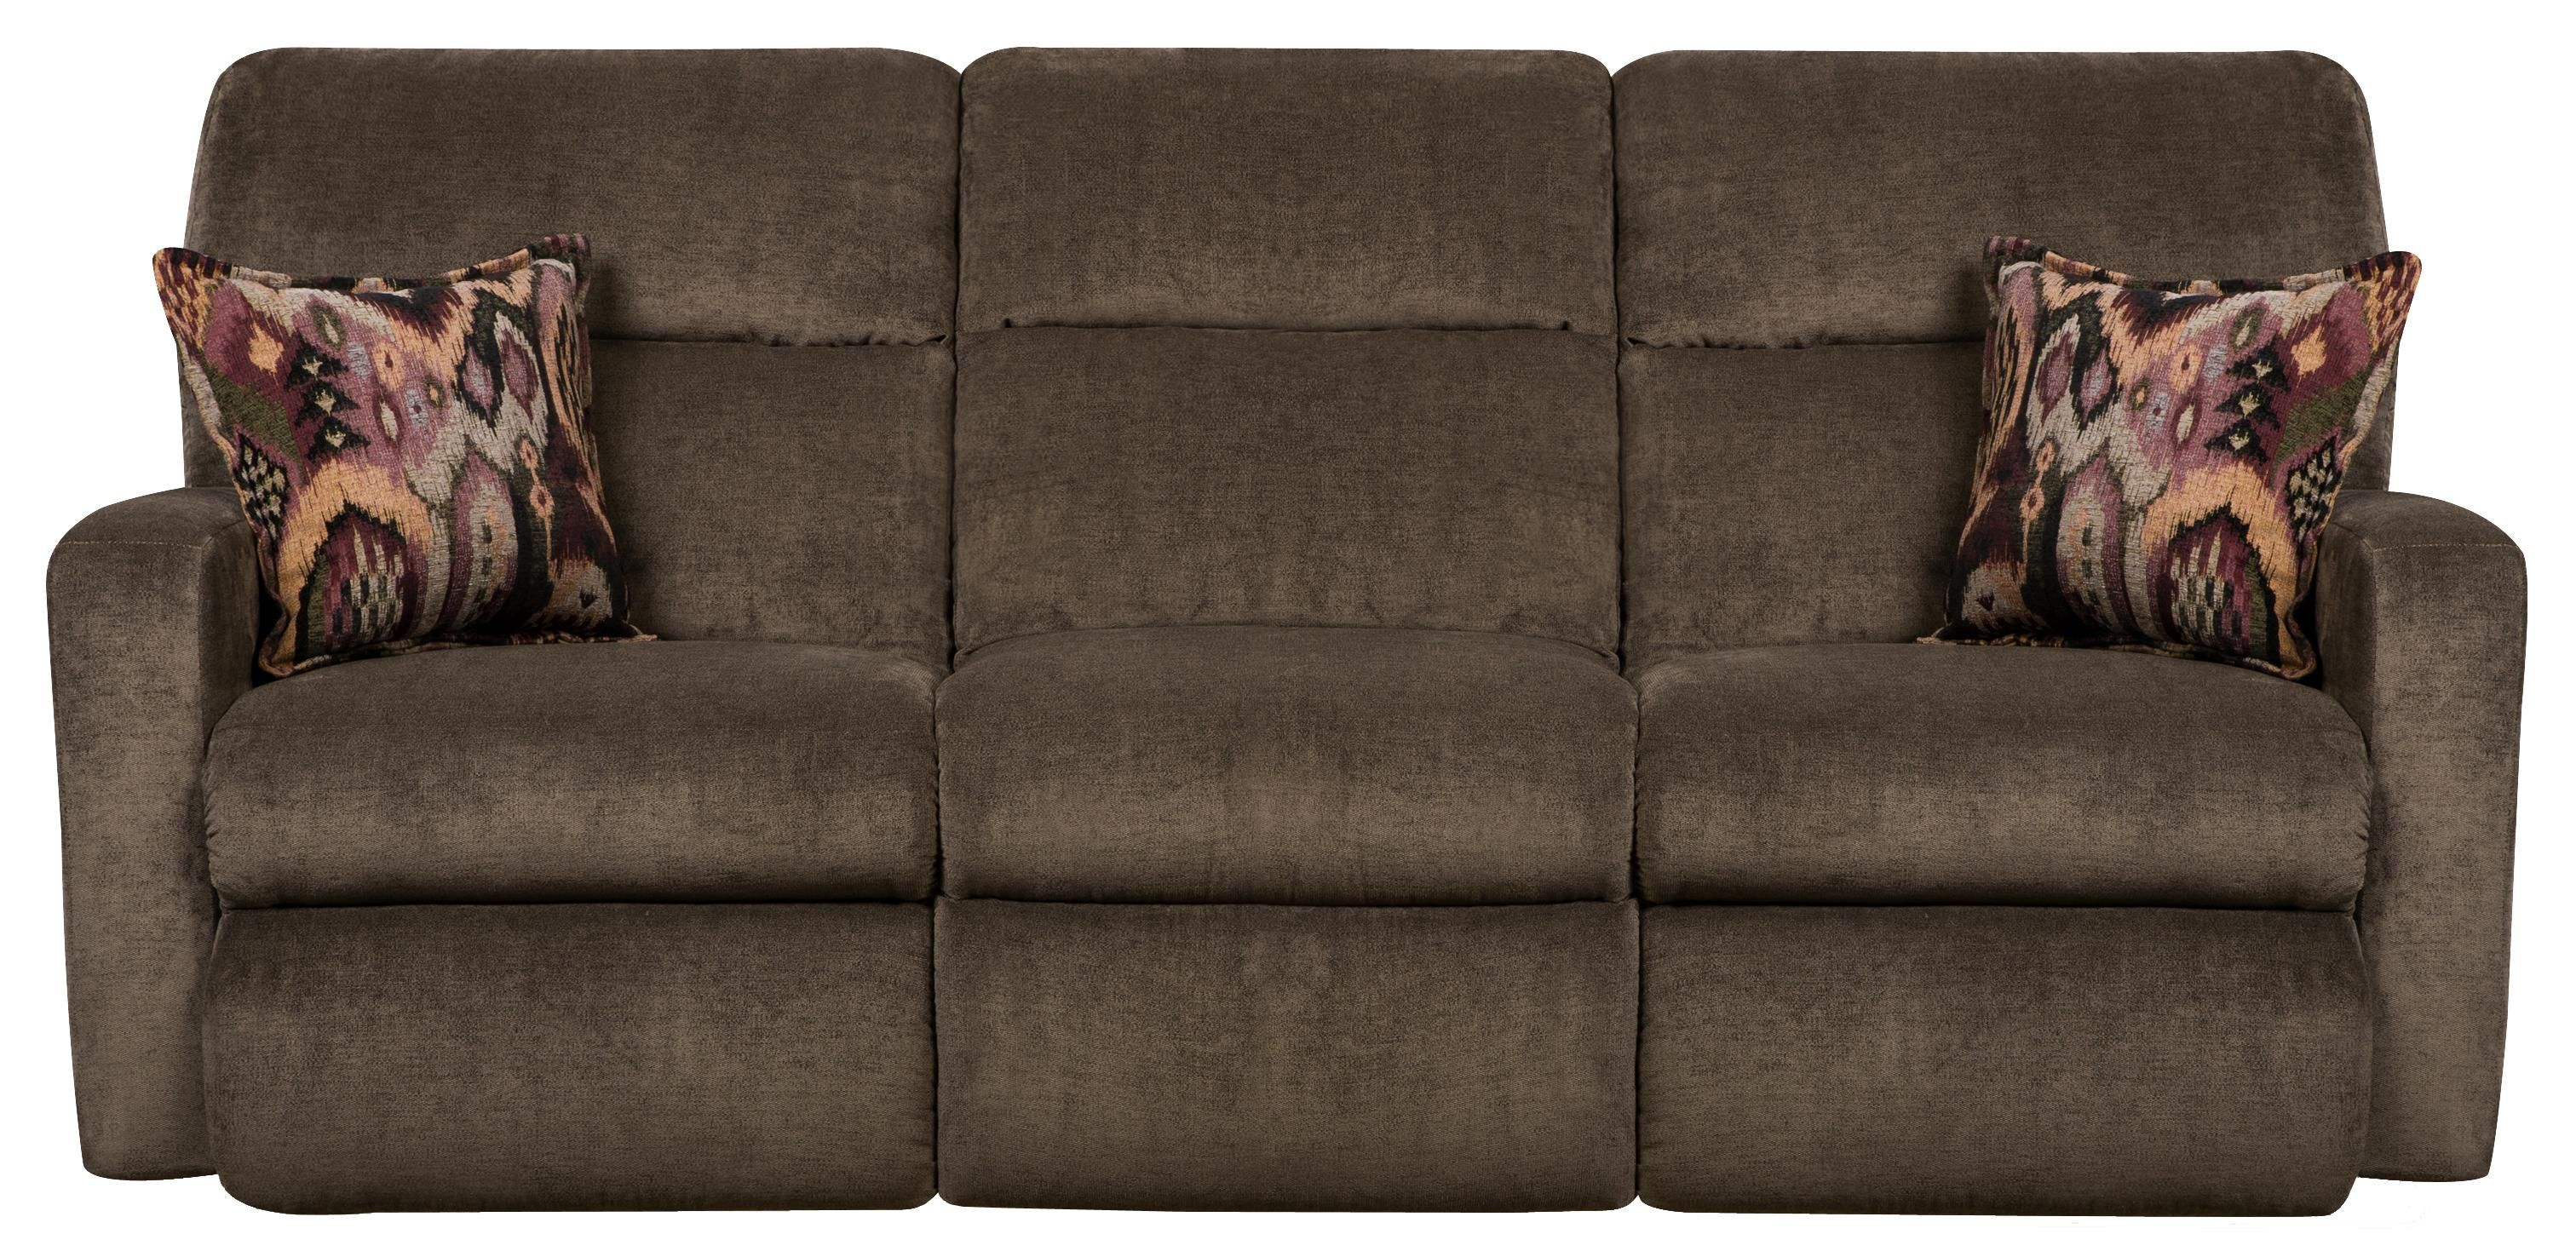 savannah double reclining sofa by southern motion clothes shoes